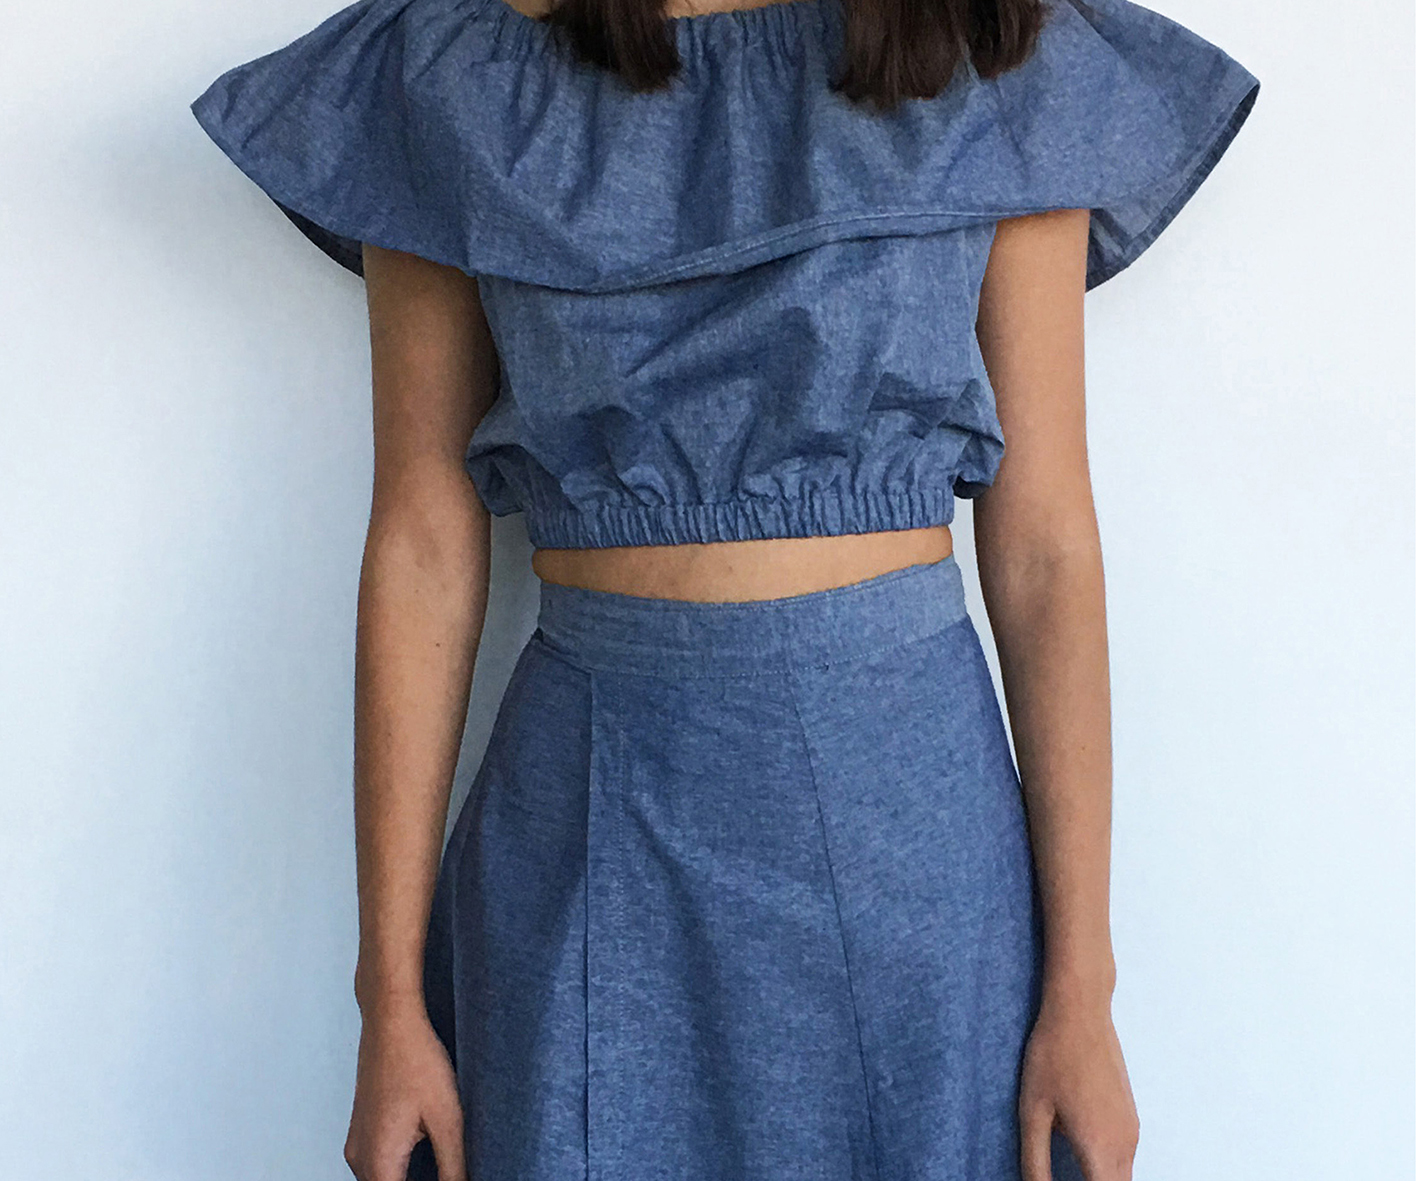 COUTURE-INTRO-BANNER - CROP-TOP-AND-WRAPAROUND-SKIRT-POST-IMAGE